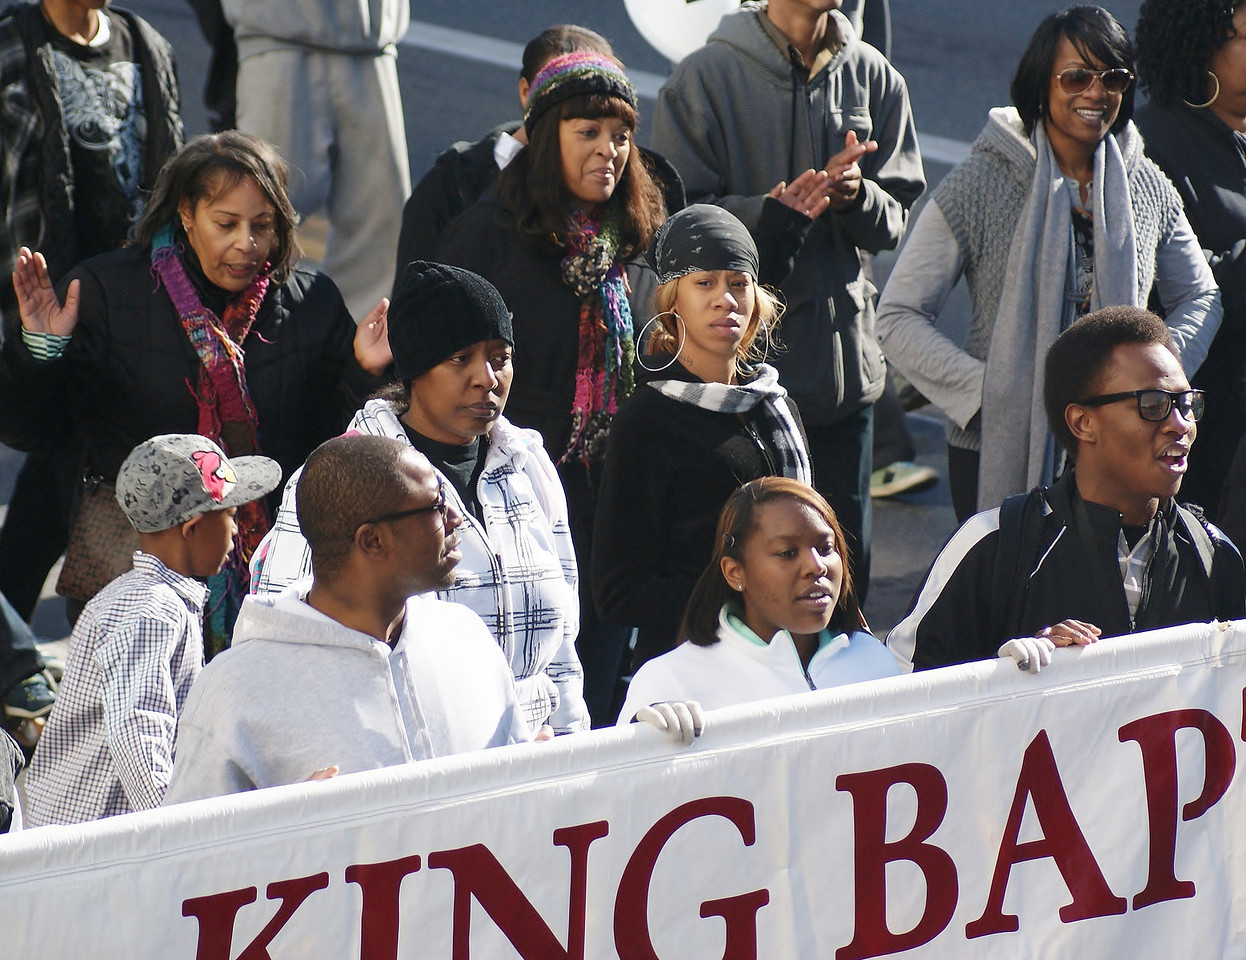 Baptist church members march in Denver on MLK Day.